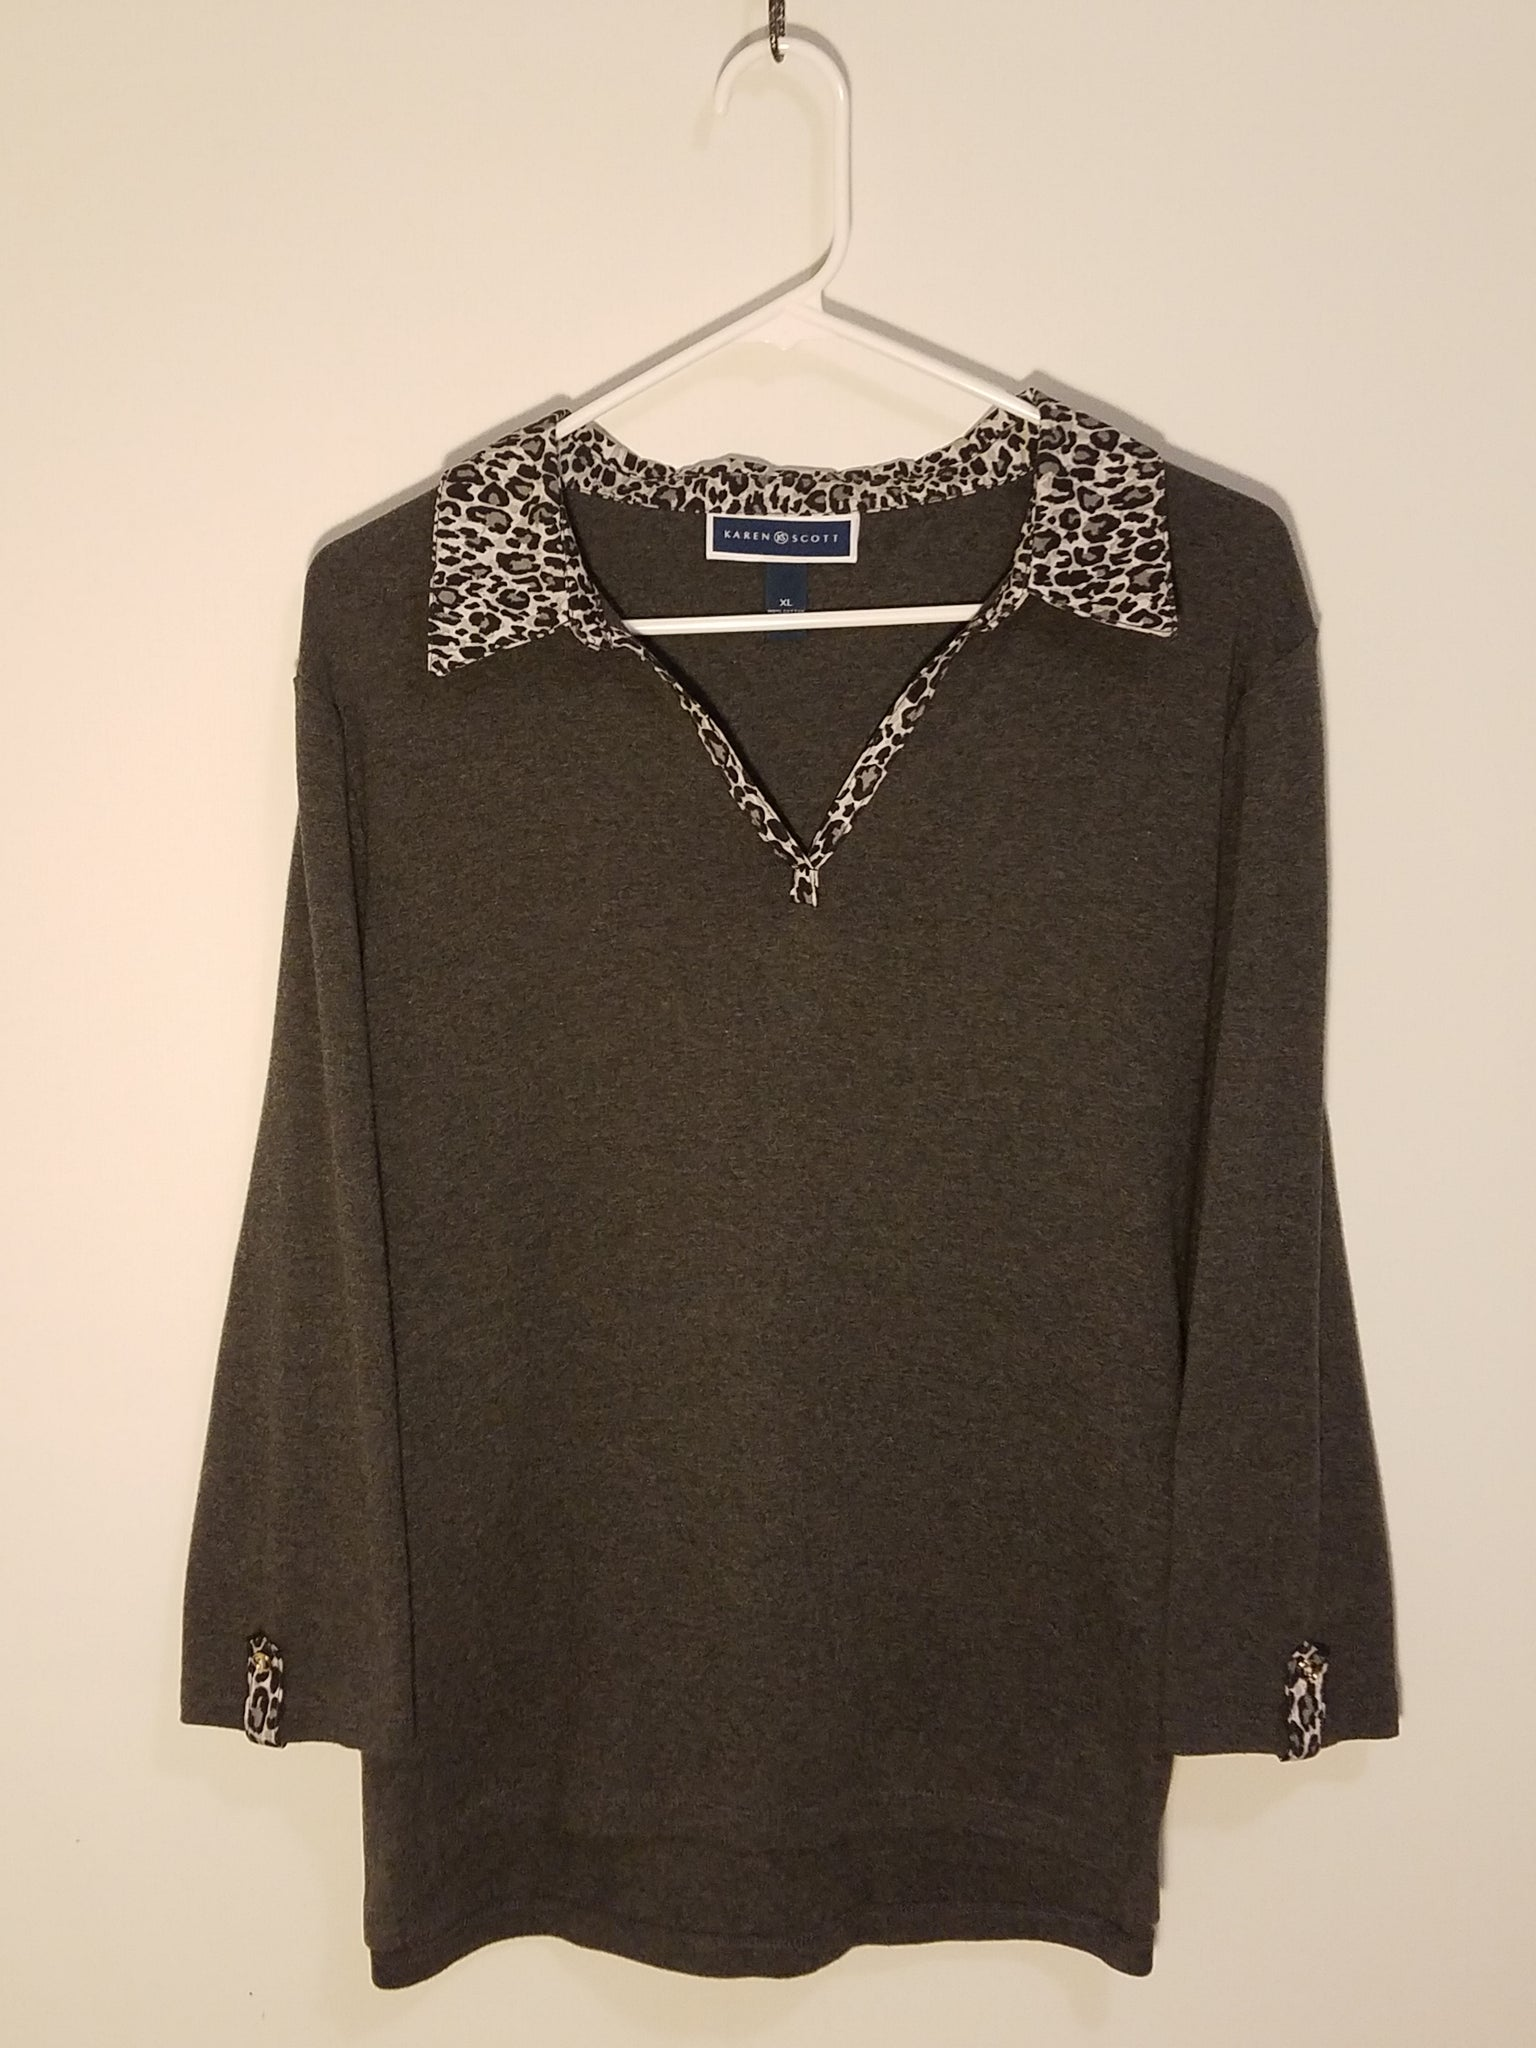 Karen Scott Top - XL